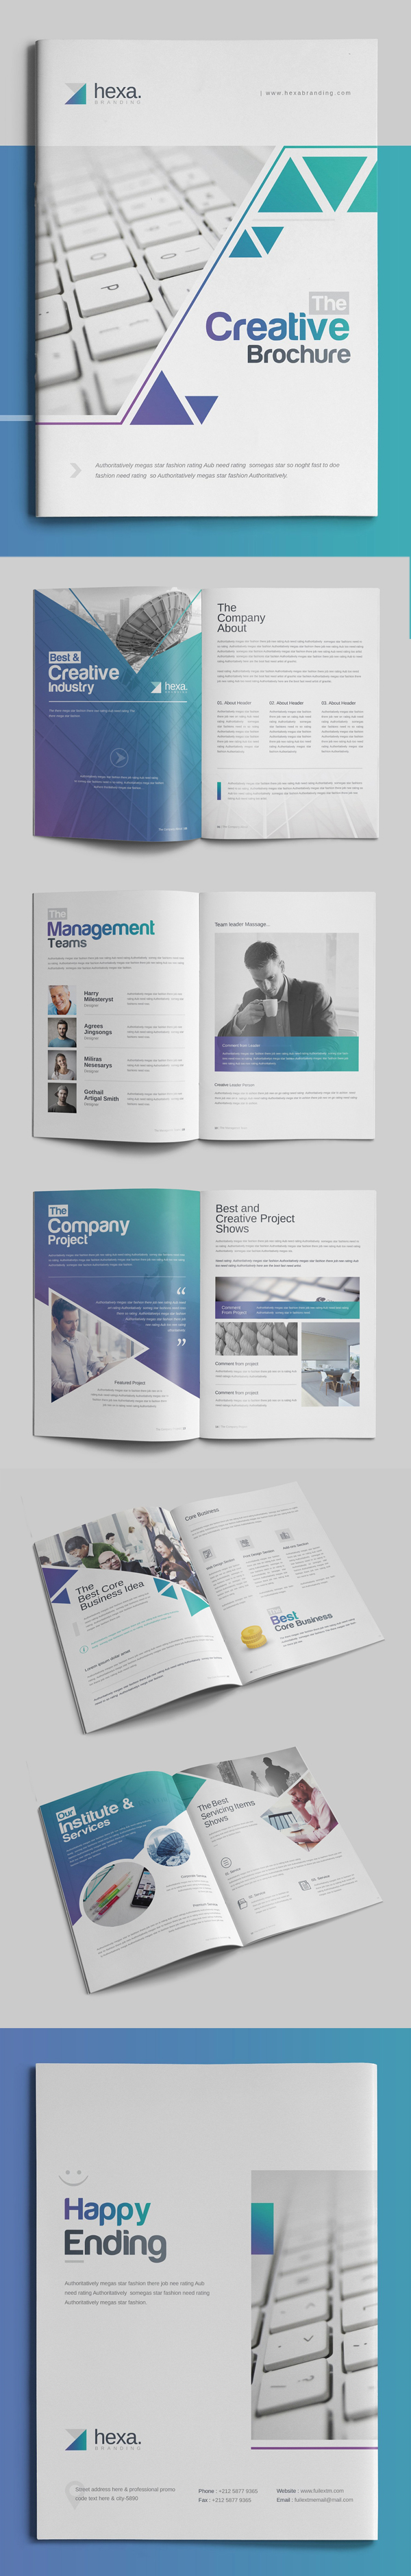 100 Professional Corporate Brochure Templates - 50